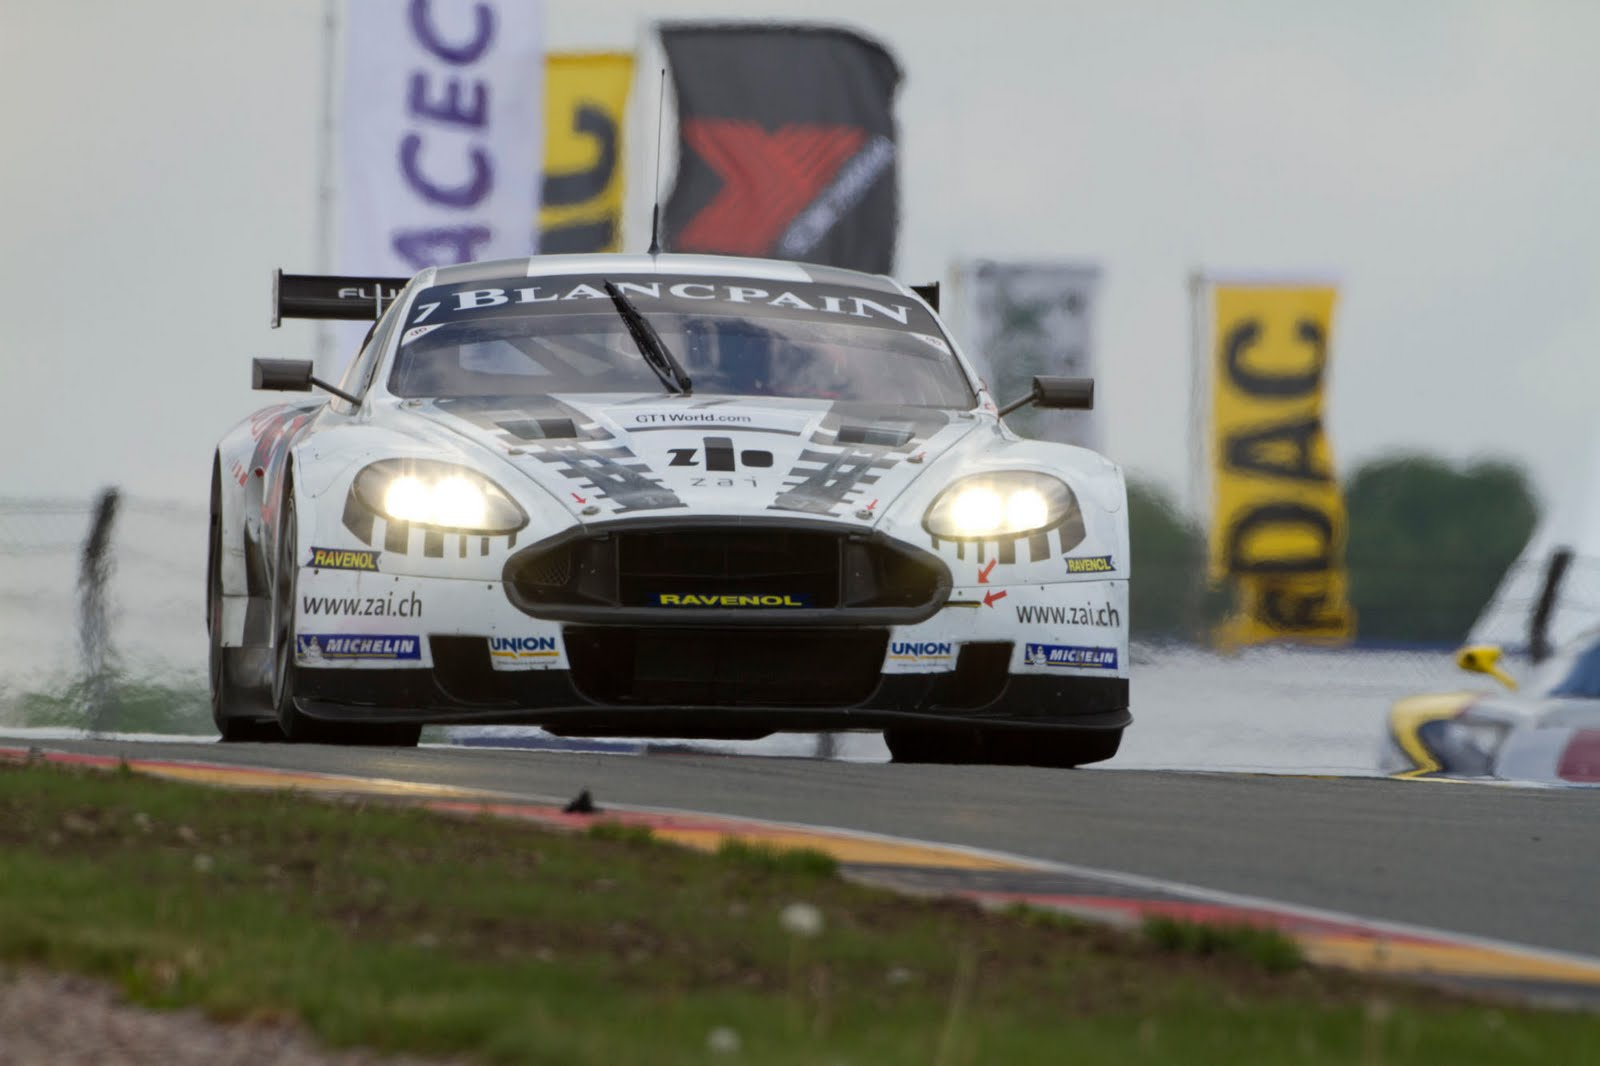 The GT1-World Championship